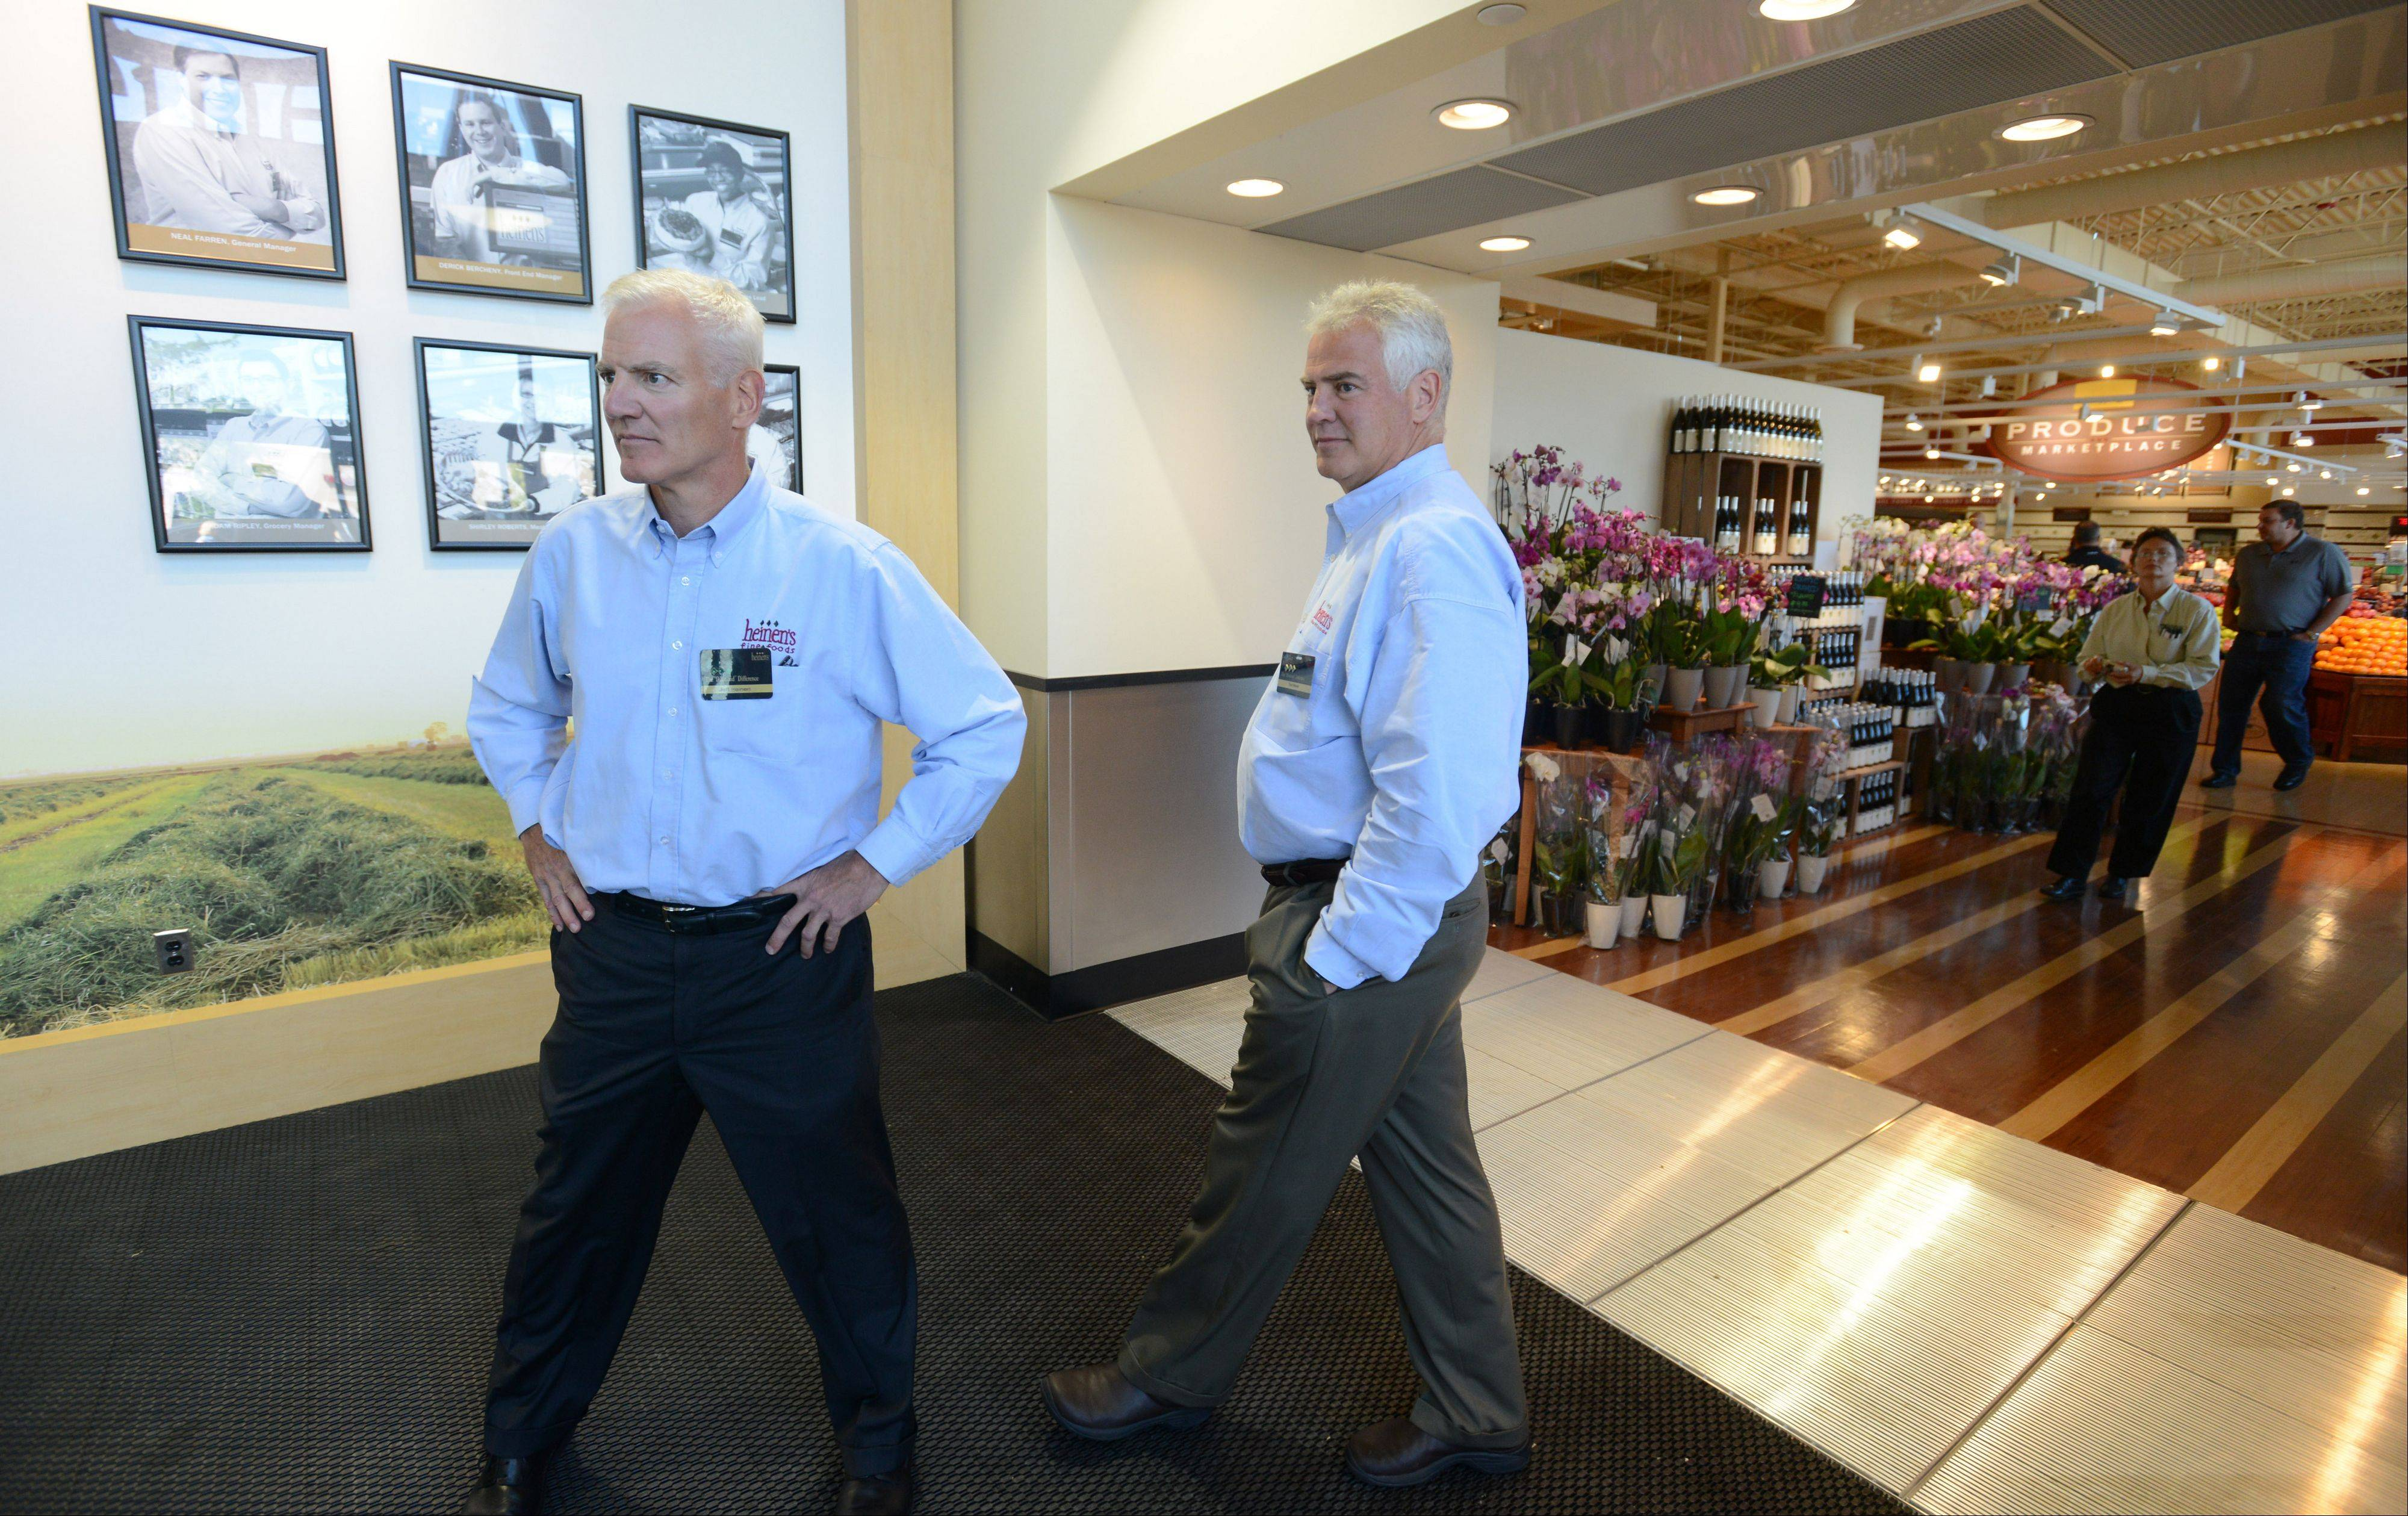 Brothers Jeff and Tom Heinen get ready to open the 18th location of Heinen's Fine Foods, their 83-year-old, family-owned grocery store chain, in Barrington Wednesday morning. The store is Heinen's first in the Chicago area.